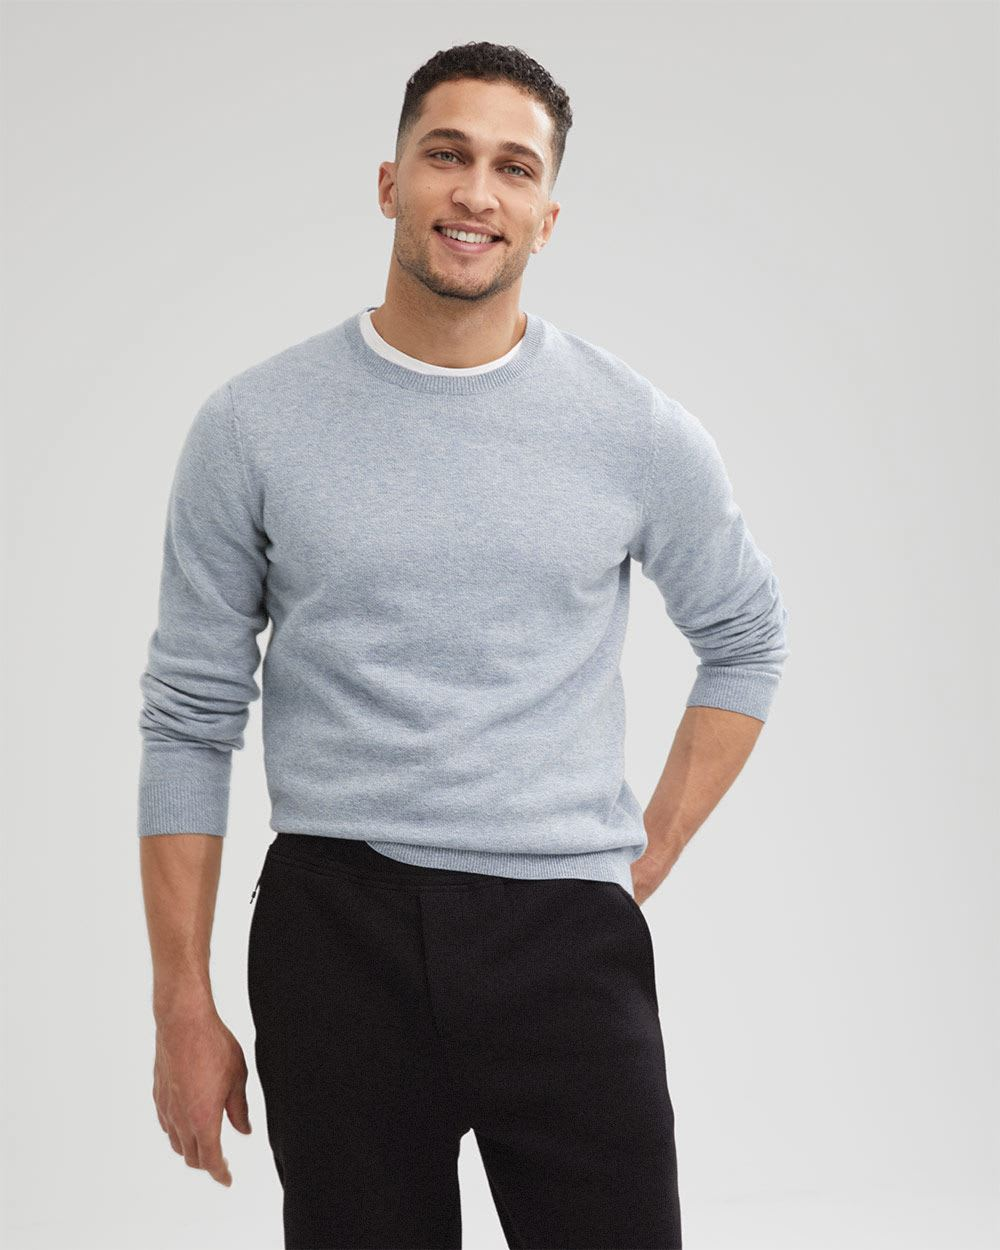 Jersey Stitch Crew-Neck Sweater